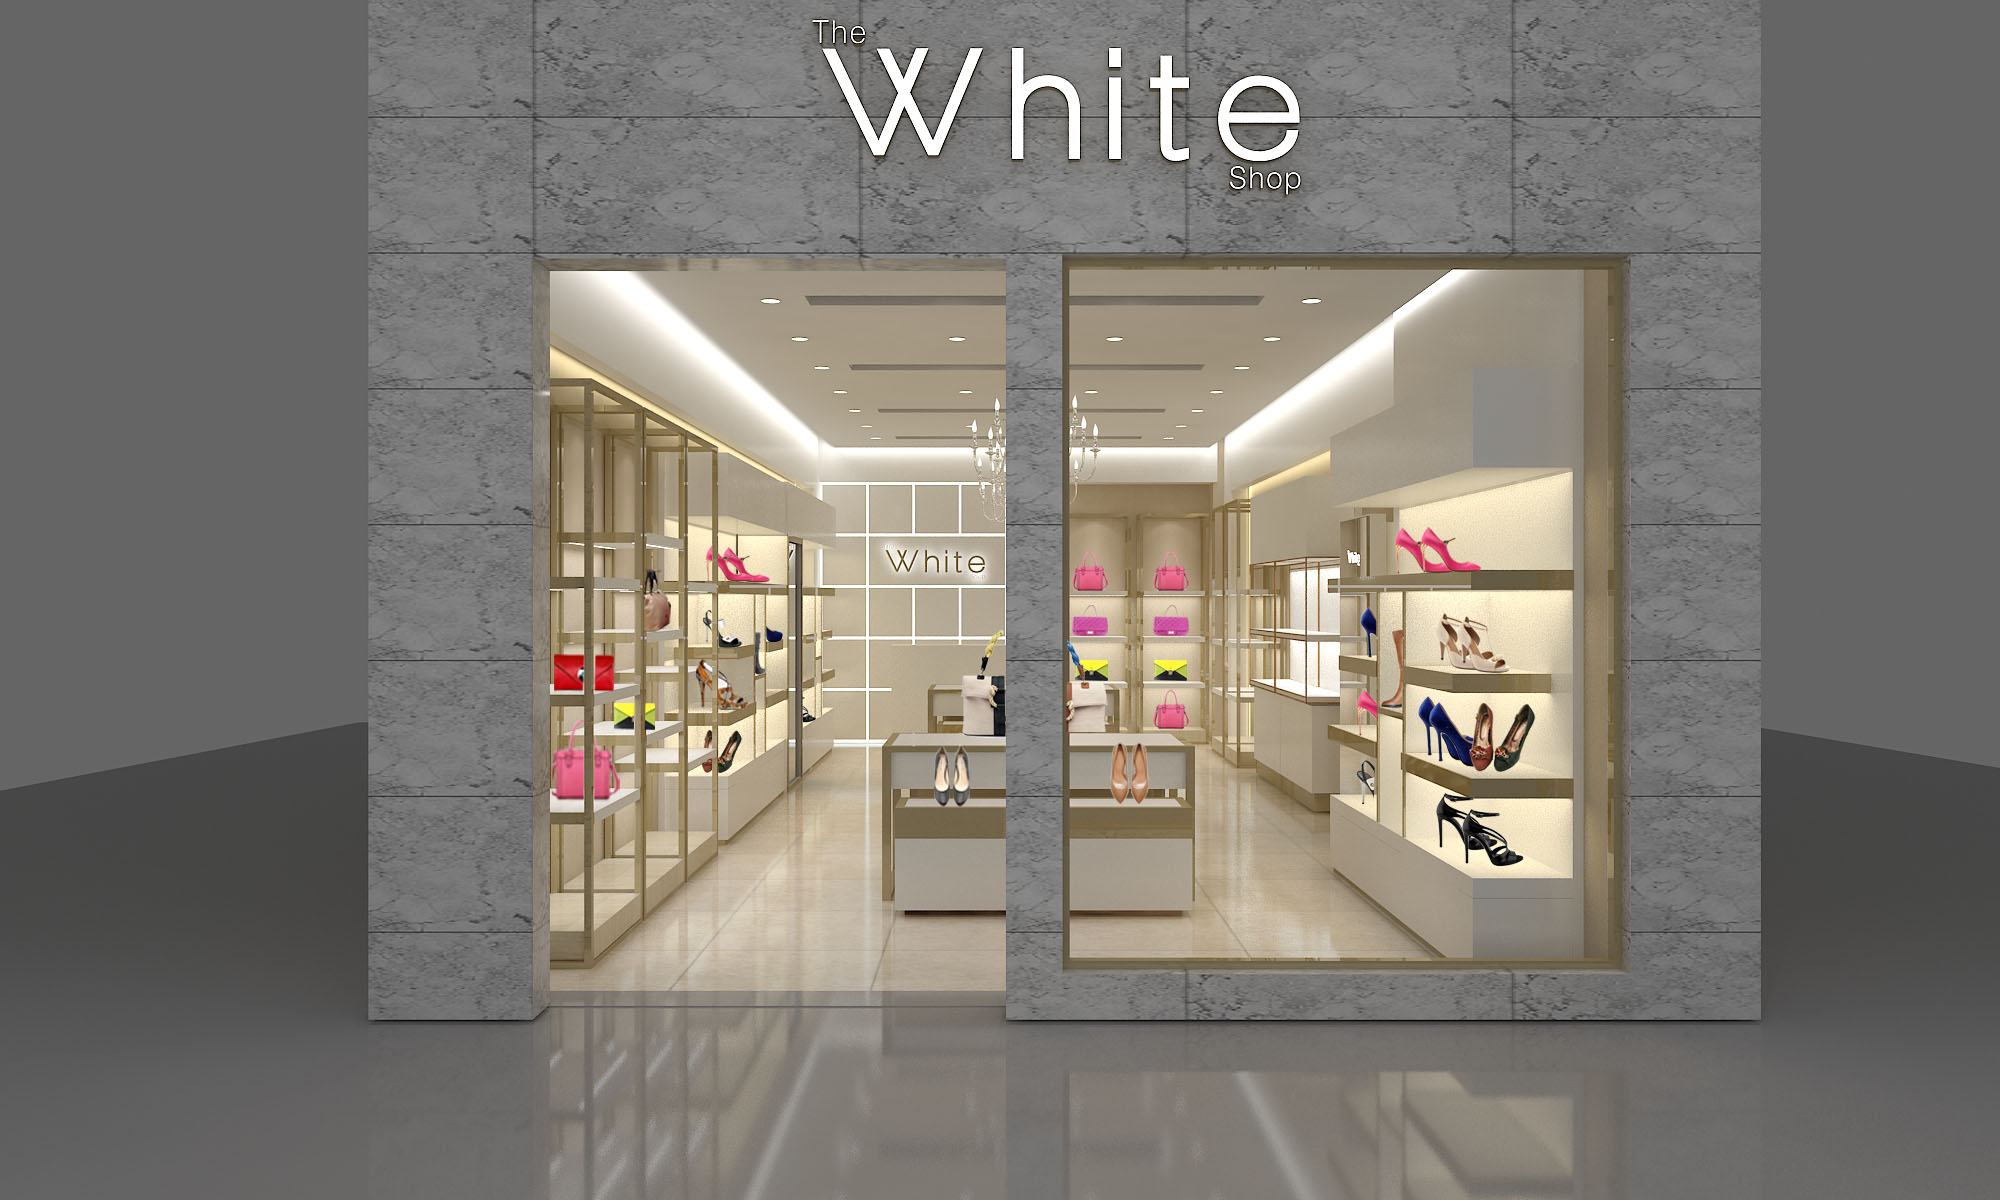 the White brass Jewelry shop design